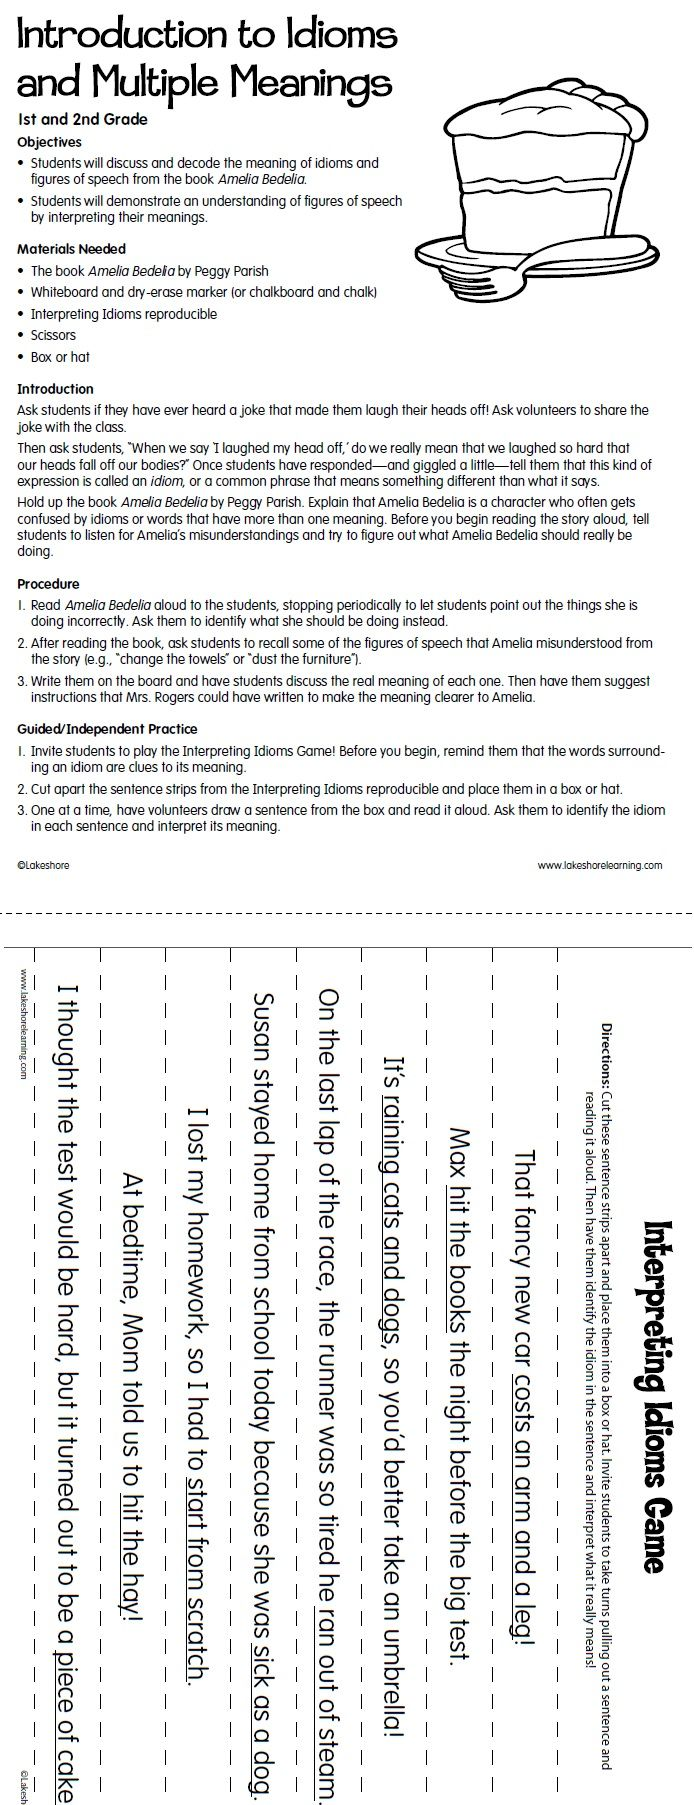 worksheet Multiple Meaning Words Worksheets 3rd Grade lakeshore dream classroom introduction to idioms lesson plan from figurative